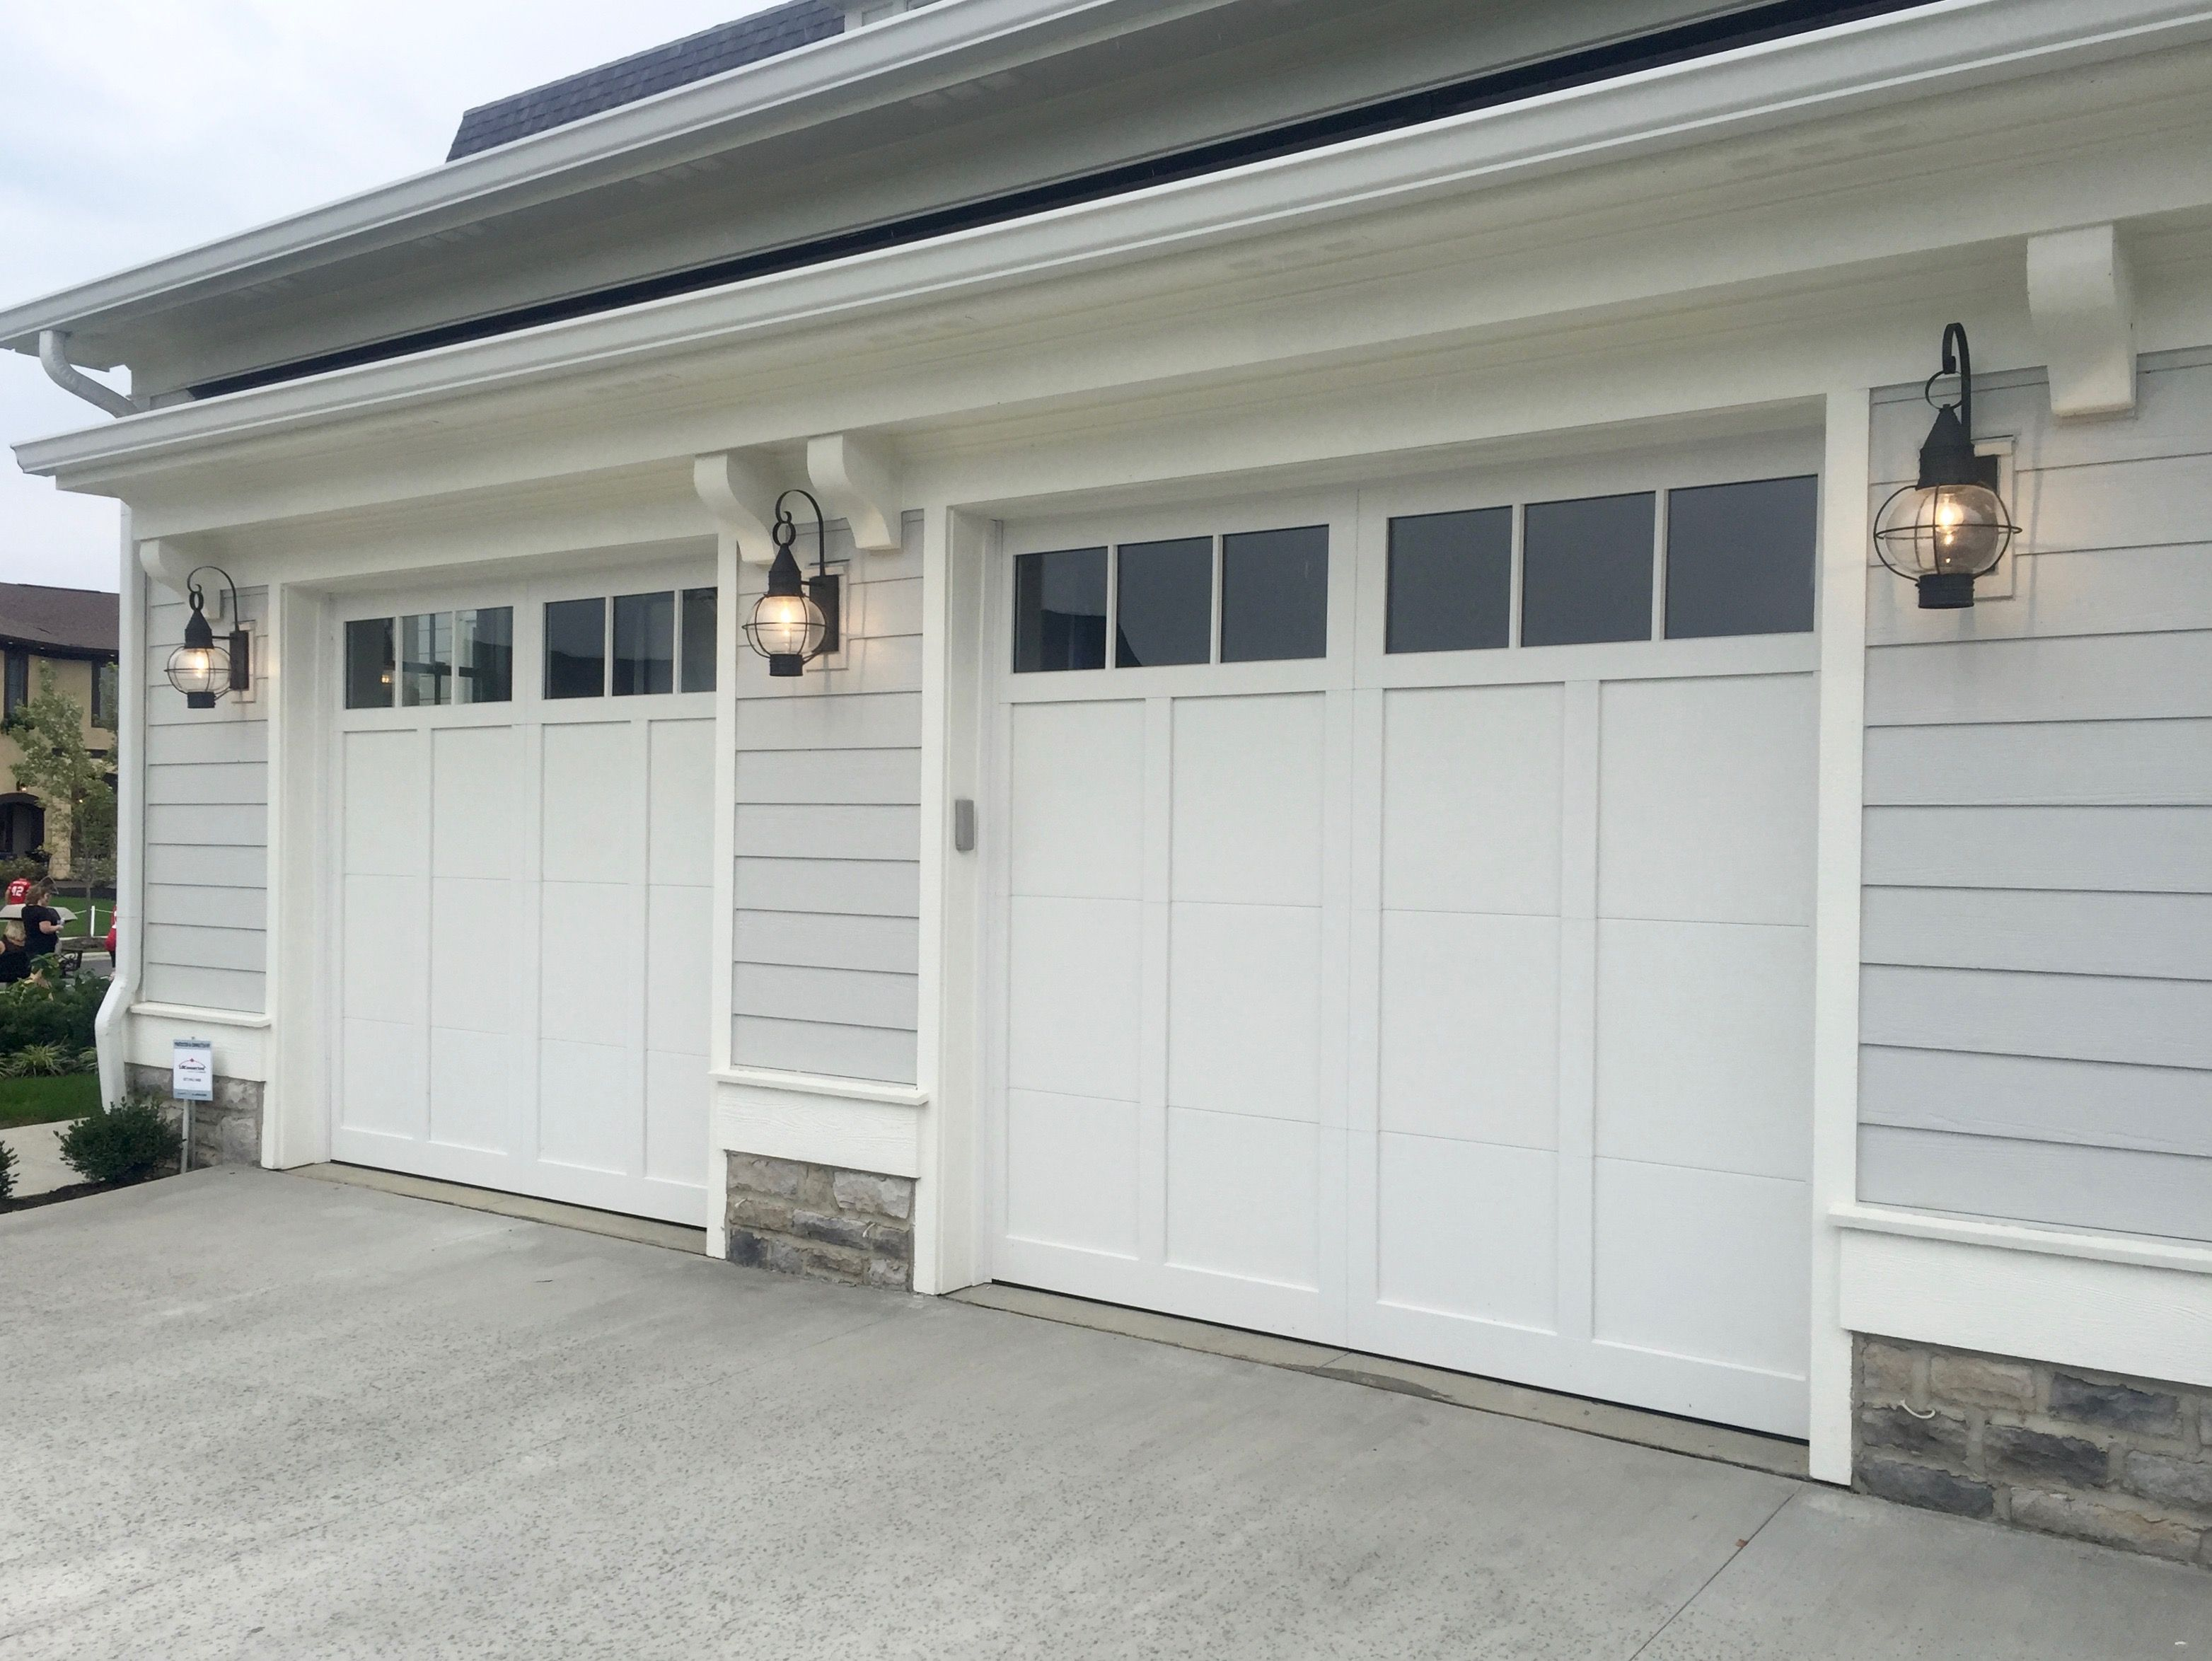 2 Car Garage Door Single Door Not Two Single Panels Like Other Pic Garage Doors Single Garage Door Garage Door Types